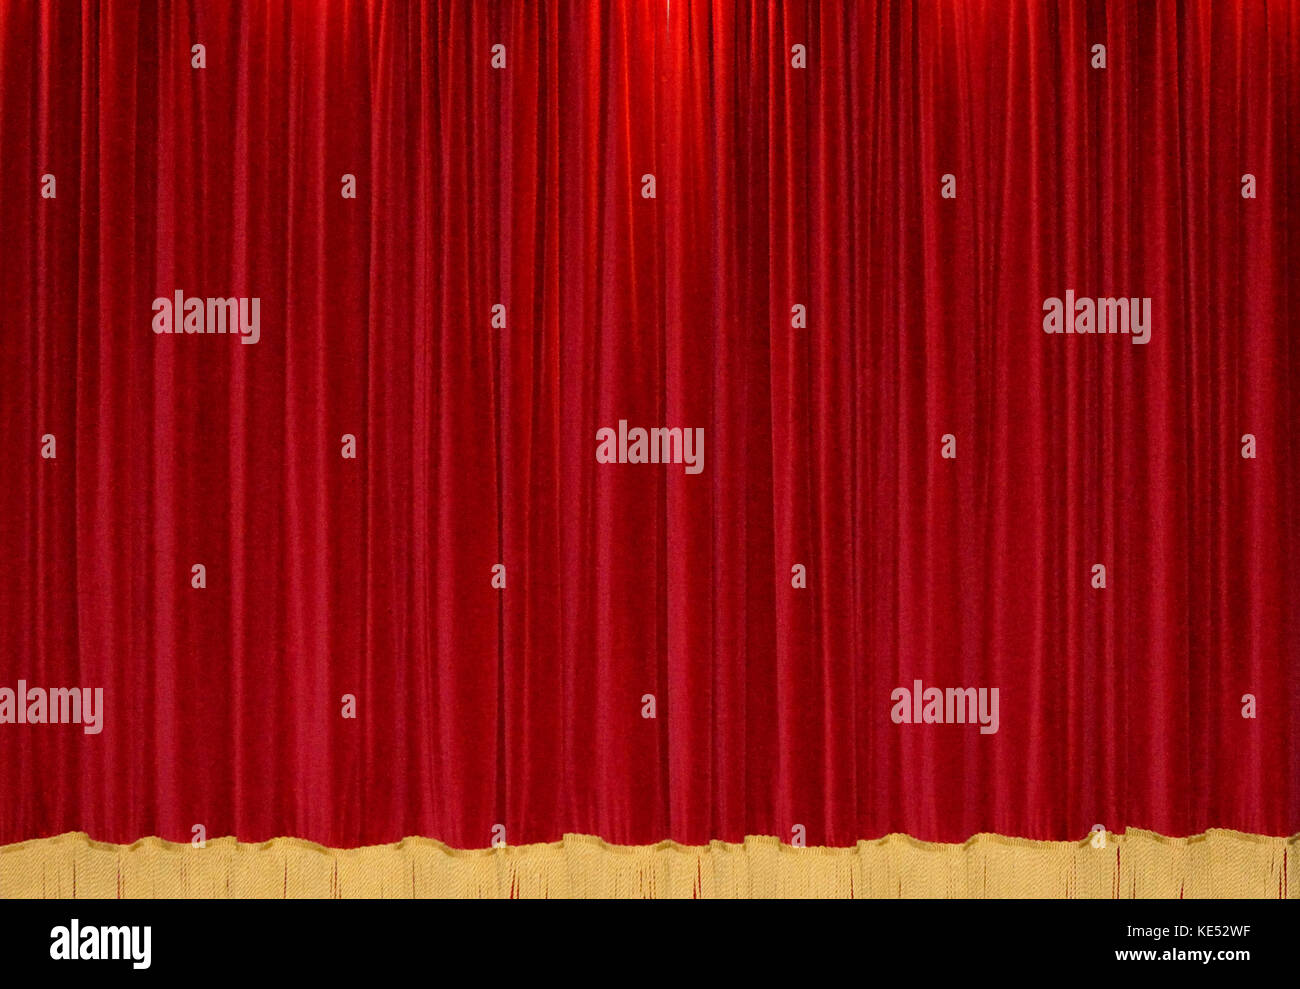 and curtain gold backgrounds image of stock curtains red the with